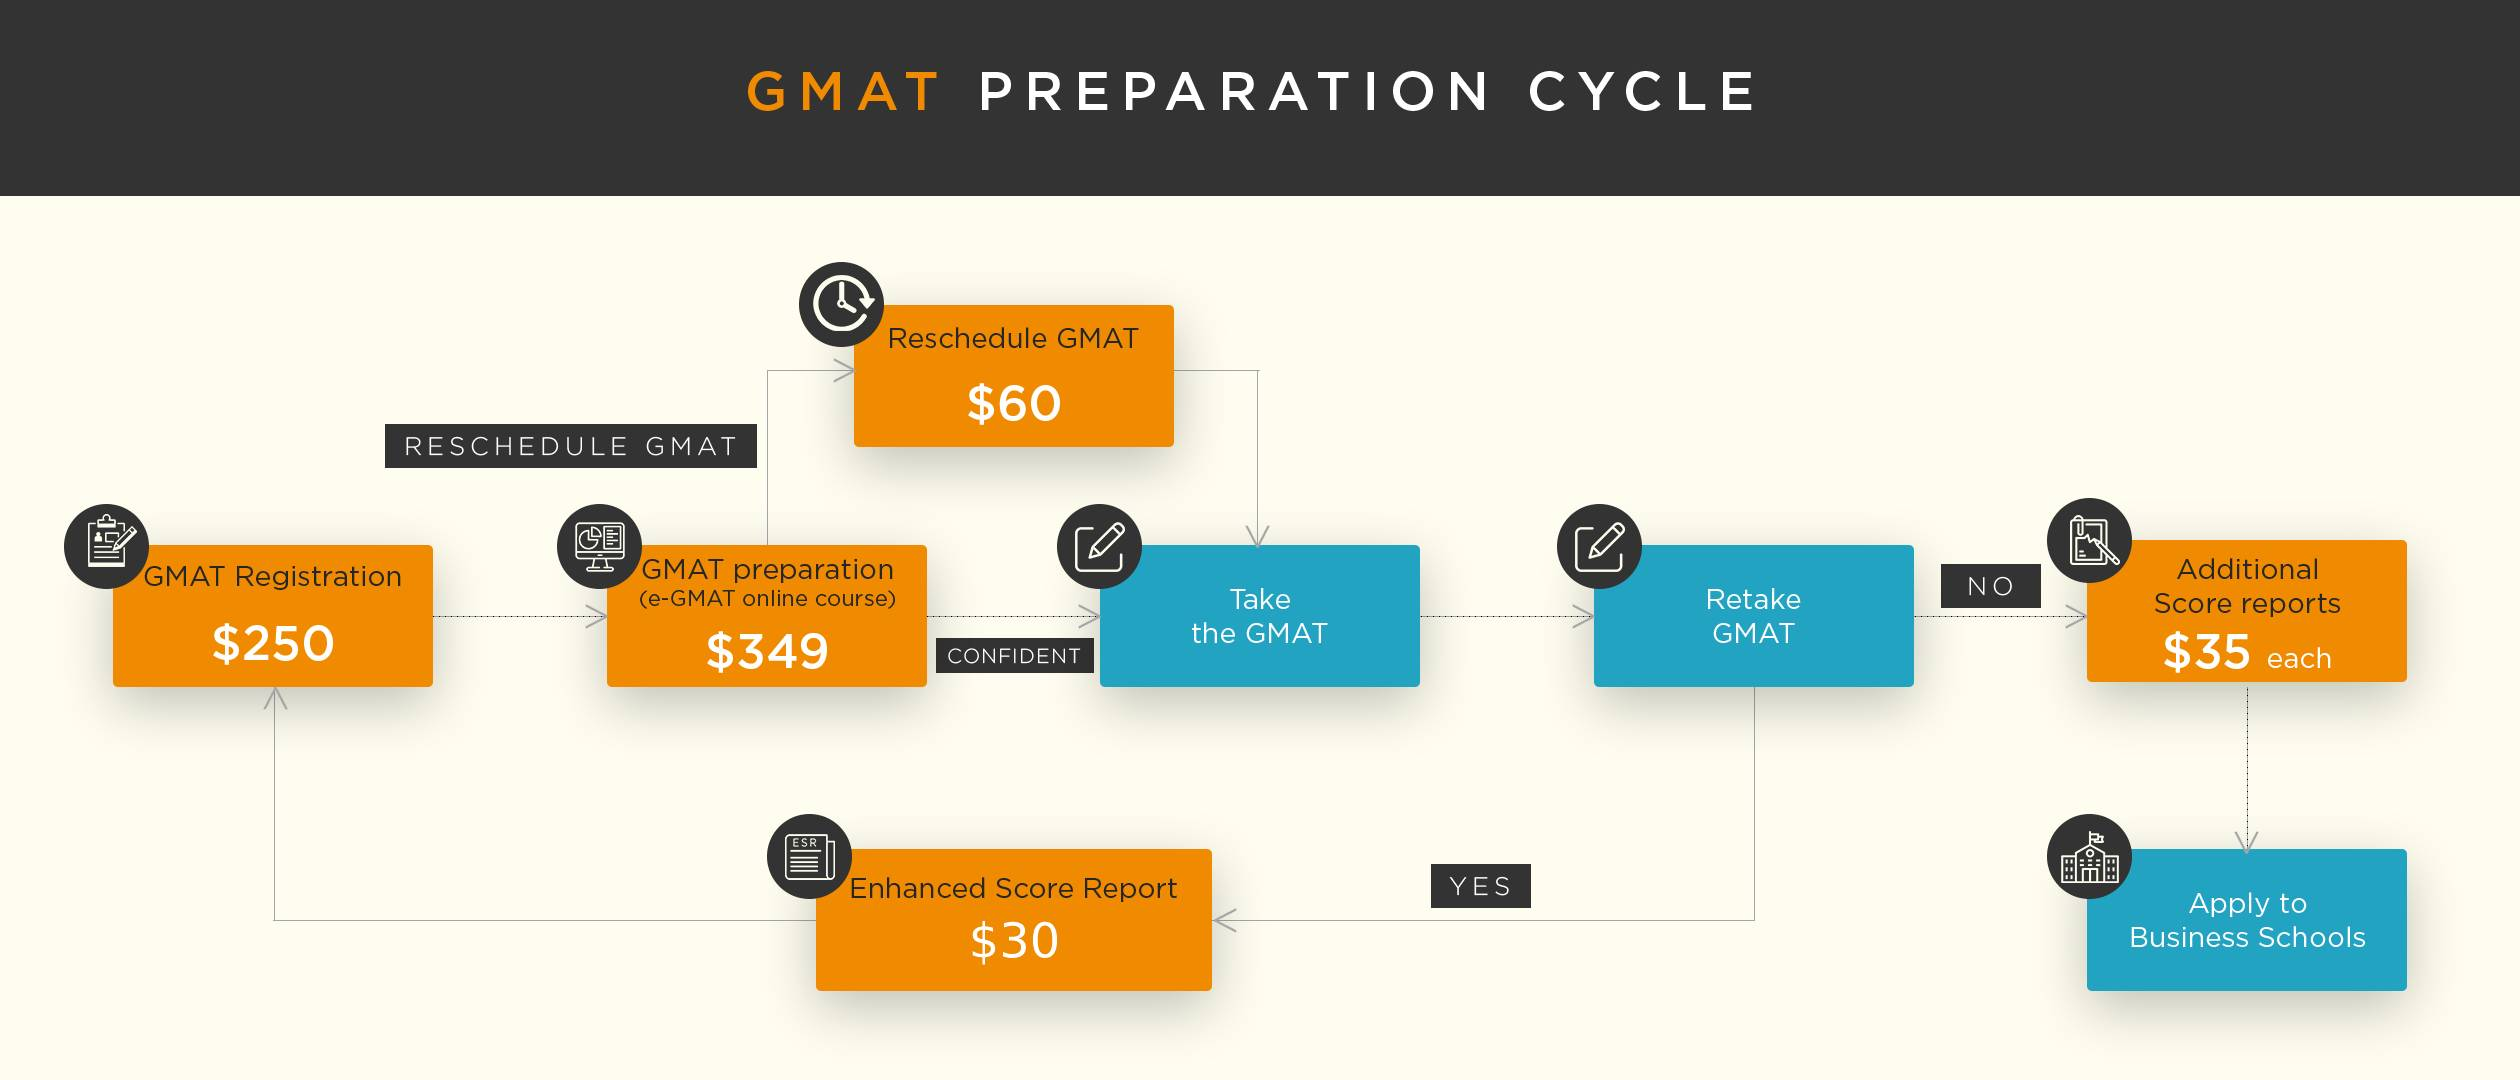 gmat-preparation-cycle-cost